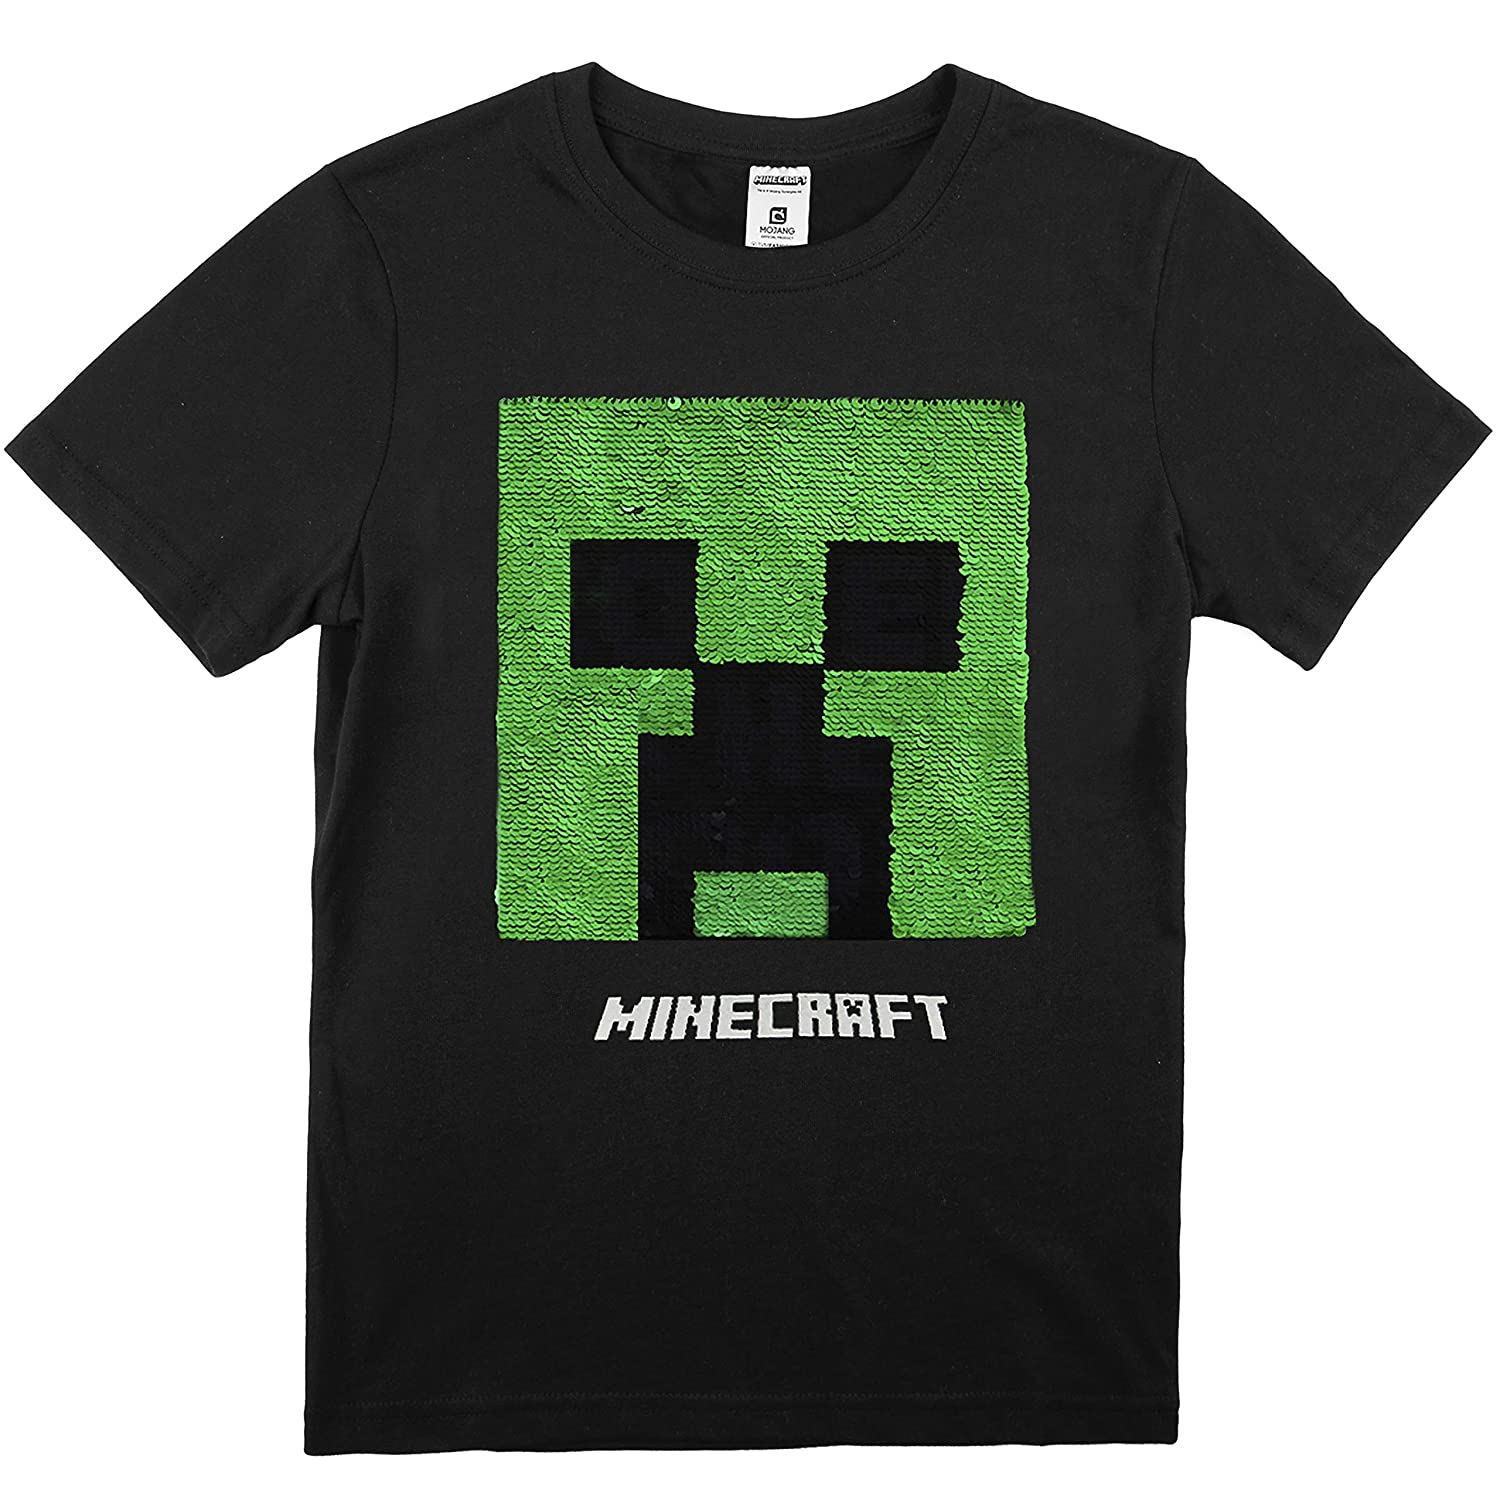 Gifts for Boys Age 5 to 14 Minecraft T Shirt for Boys Short Sleeve Black T-Shirt with Reversible Sequin Creeper Fun Graphic Tee Official Clothes for Kids and Teenagers